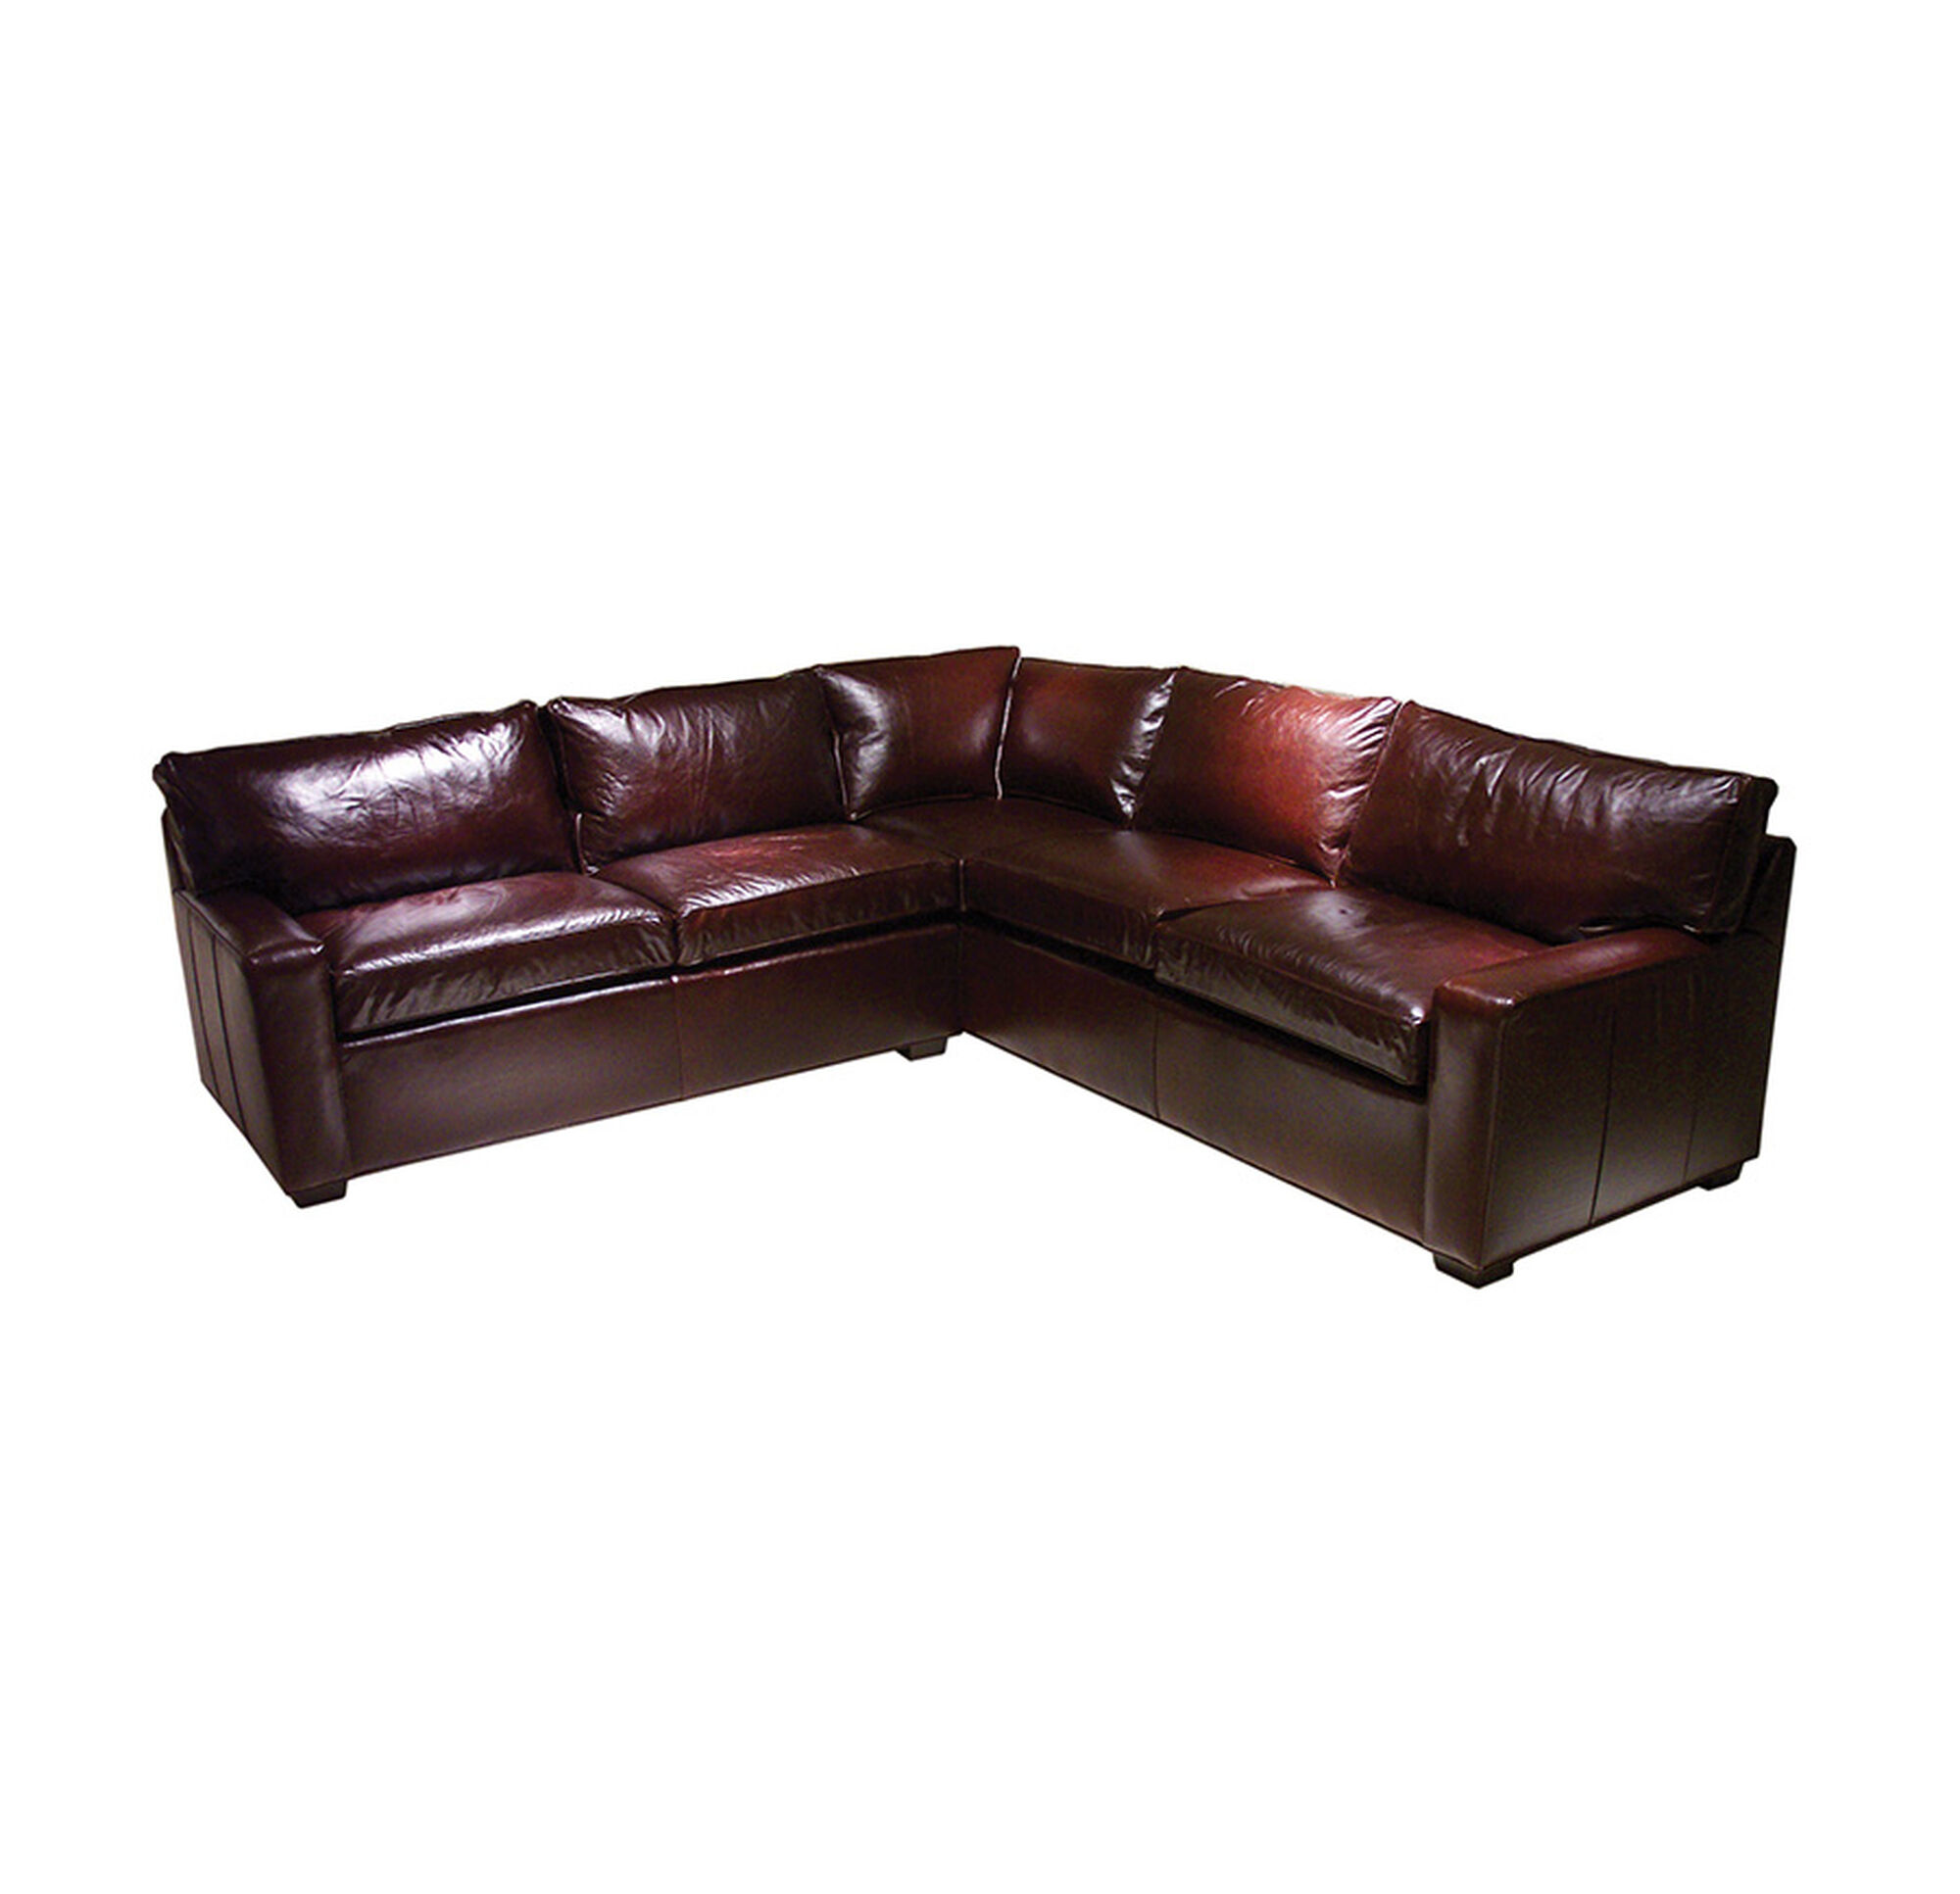 ALEX LEATHER SECTIONAL